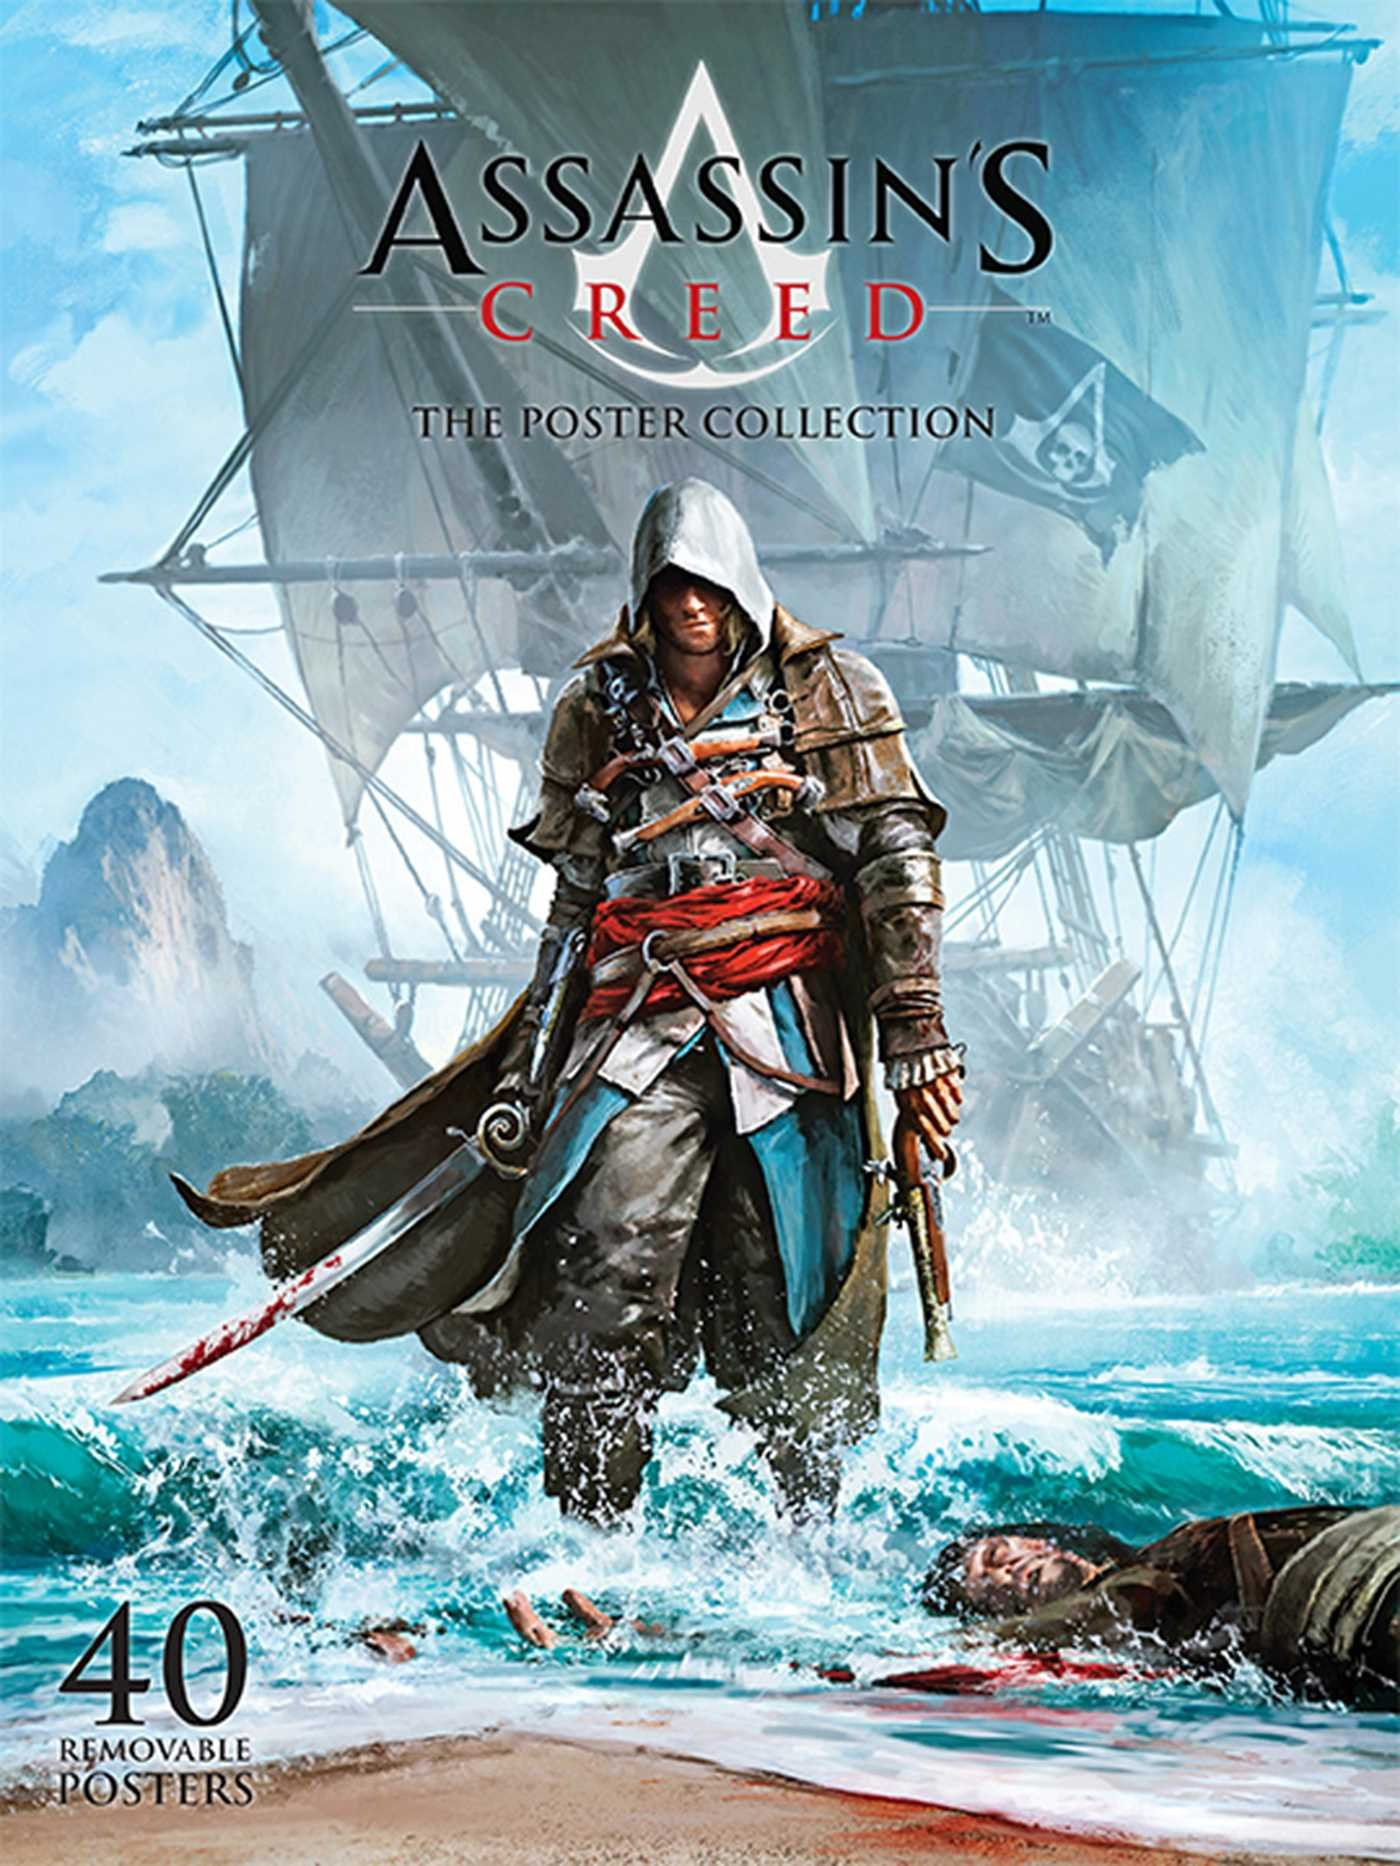 Assassin S Creed The Poster Collection Insights Poster Collections Ubisoft 9781608873005 Amazon Com Books